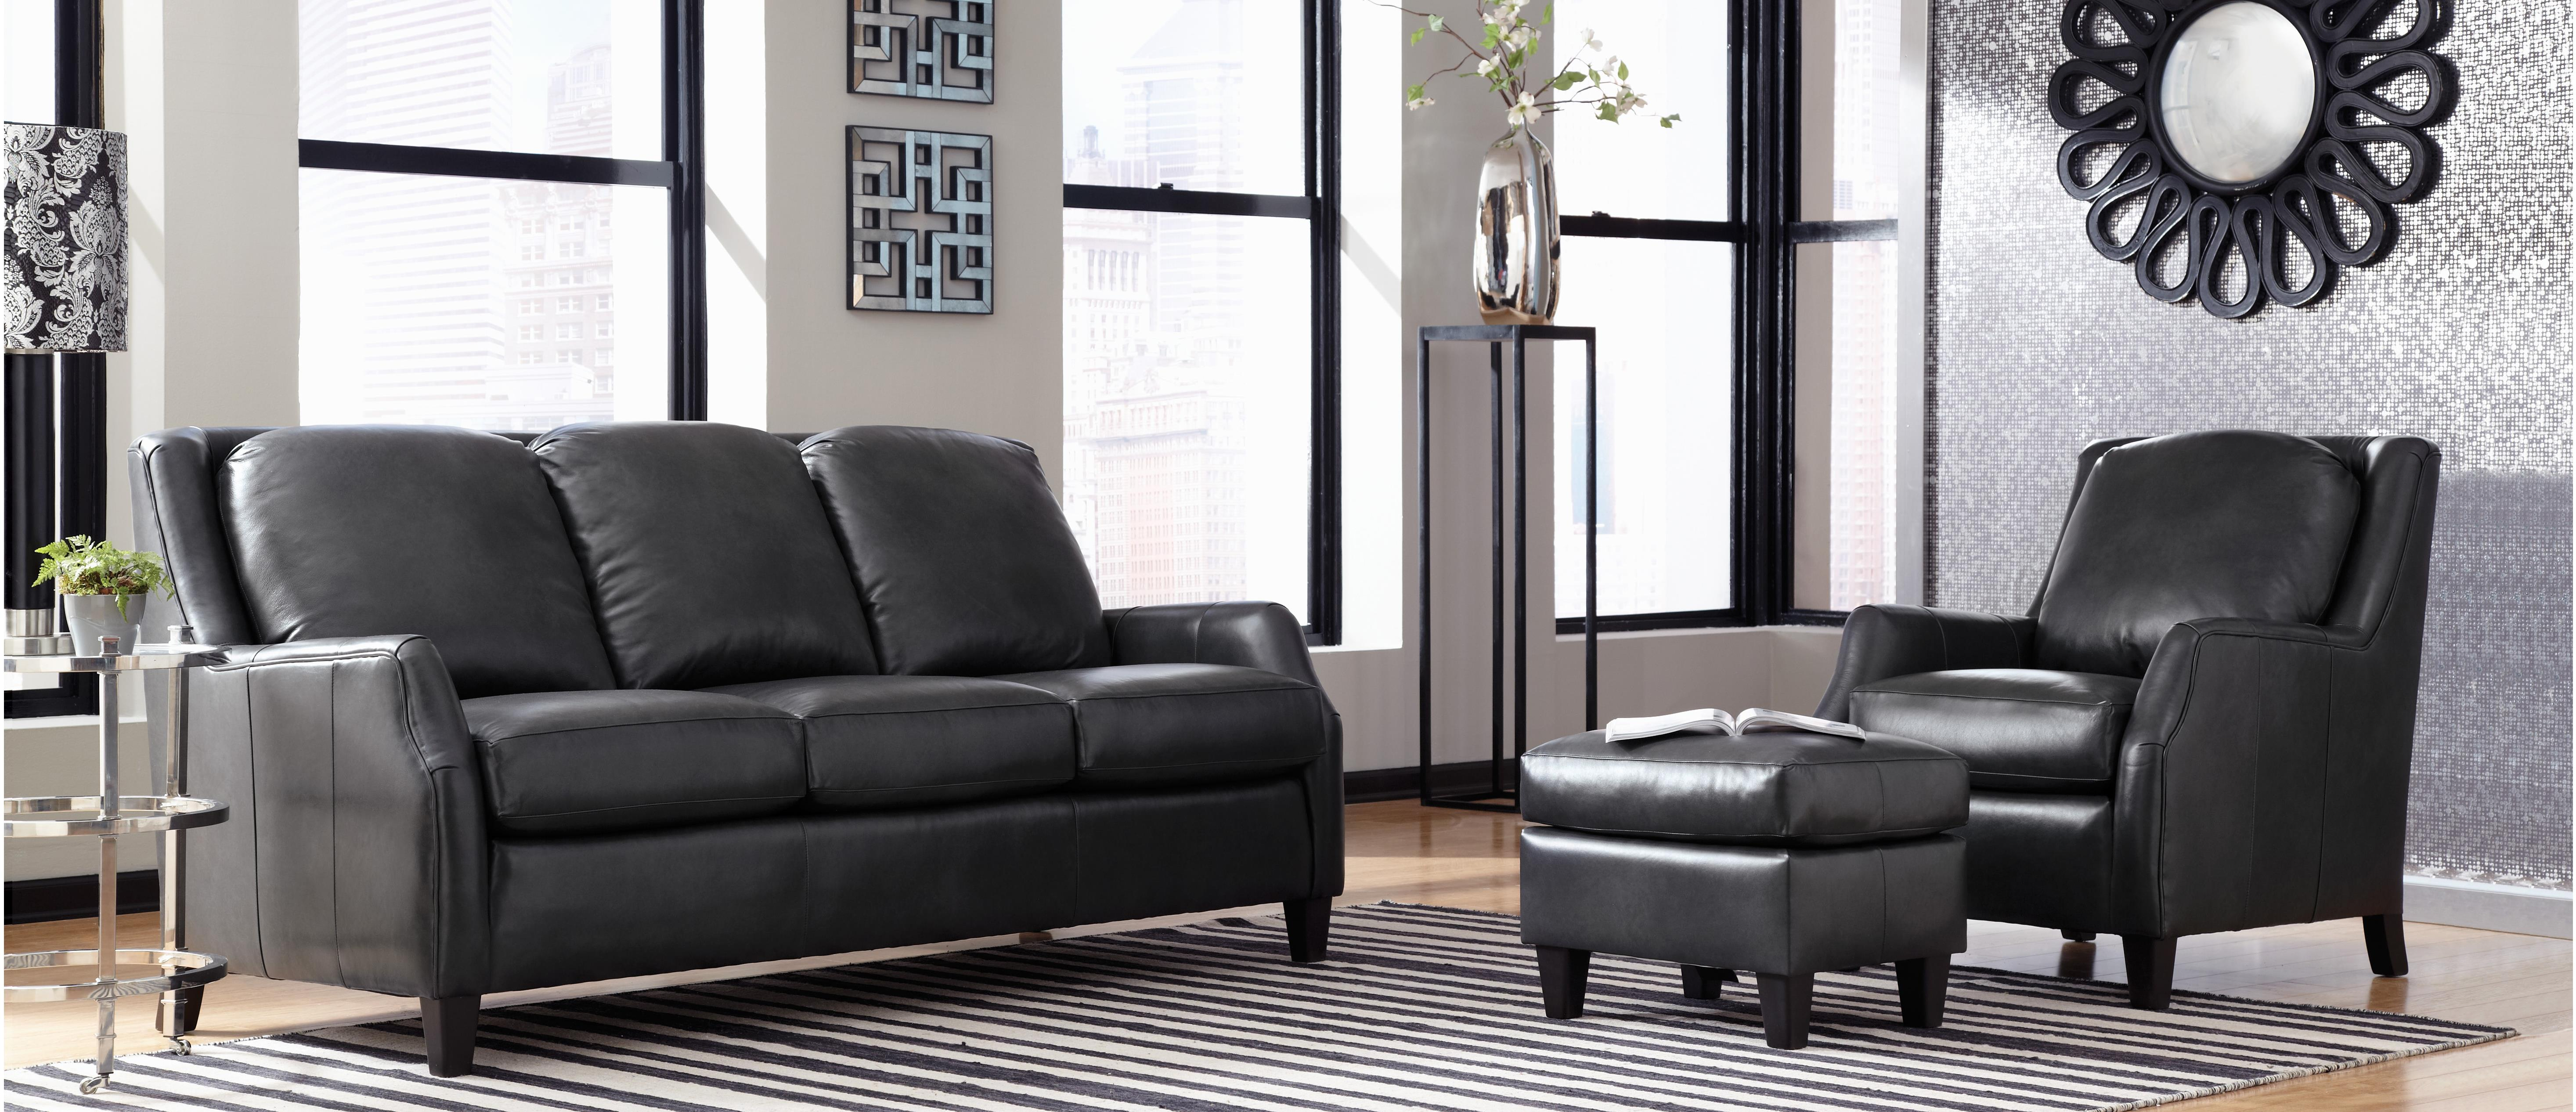 Black Sofa with Chair and Ottoman